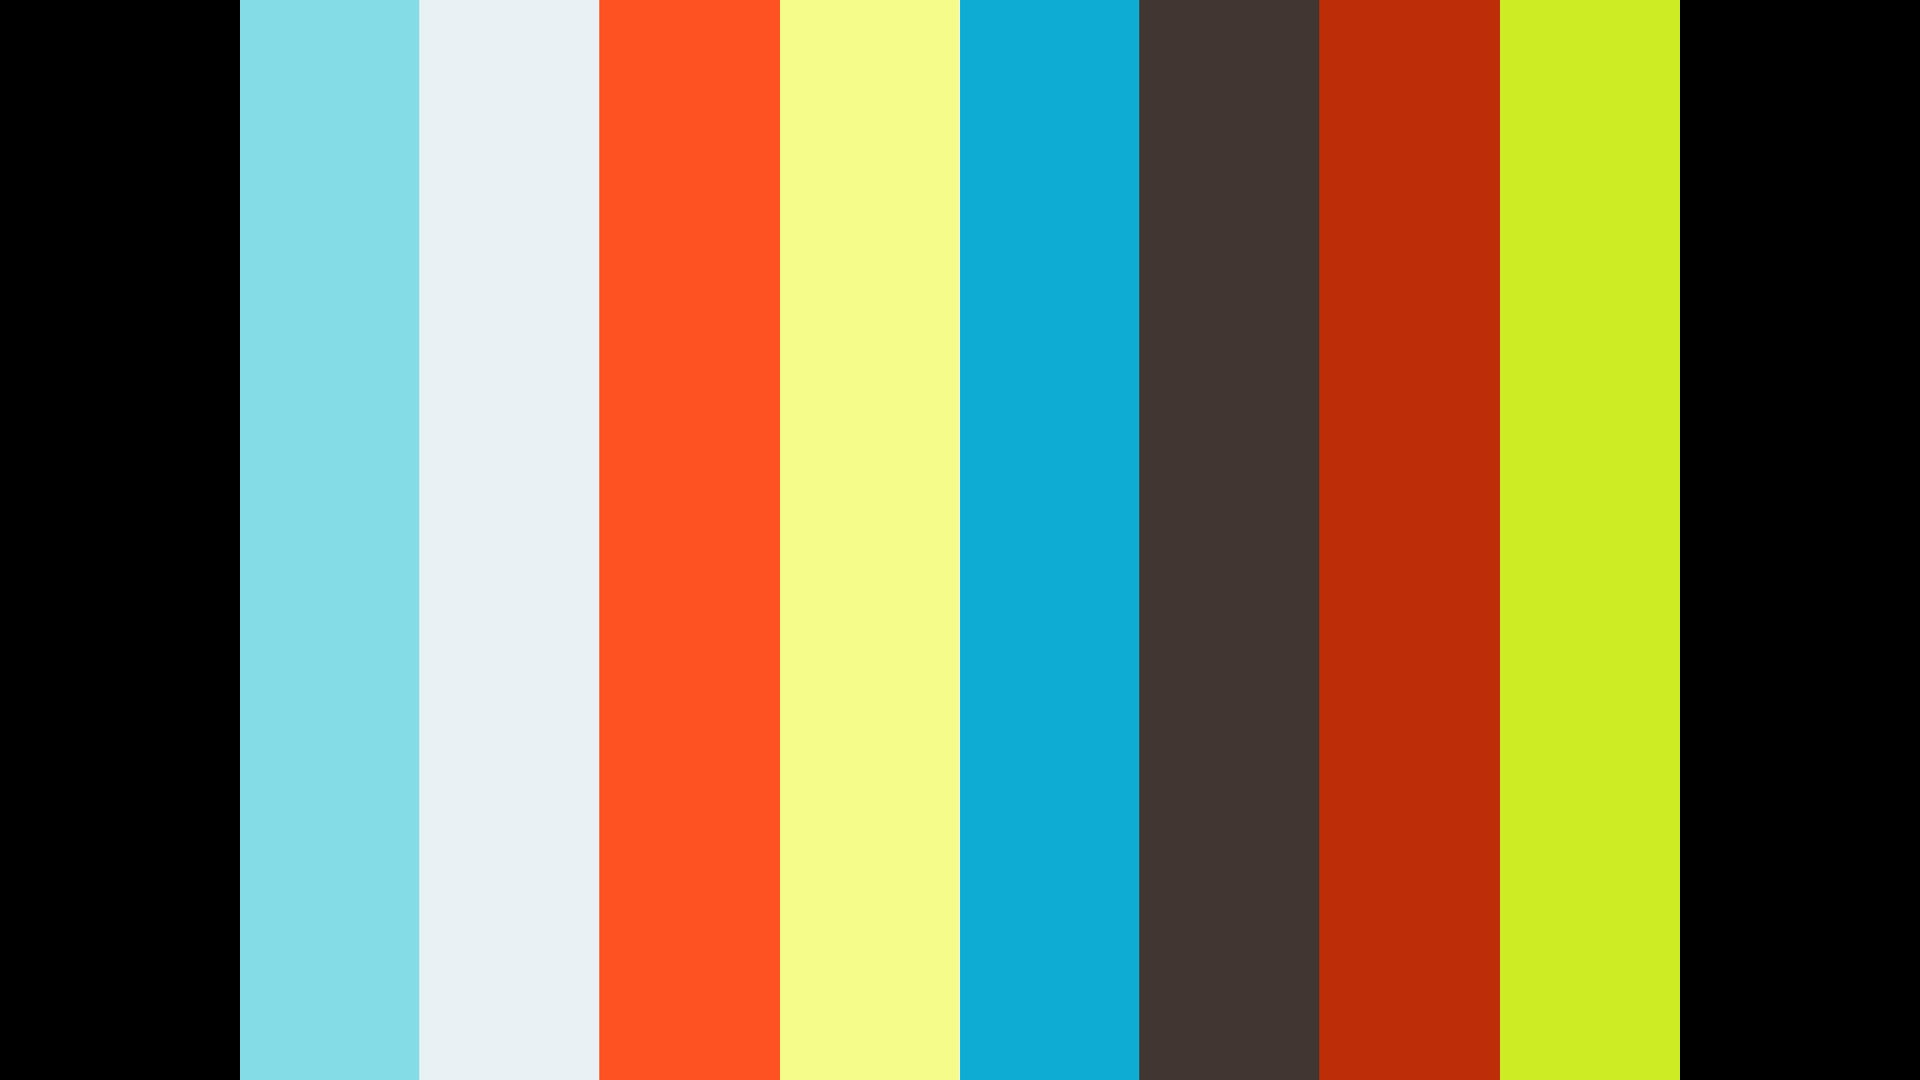 Whitworth Young Contemporaries present: Sophie and the Whitworth